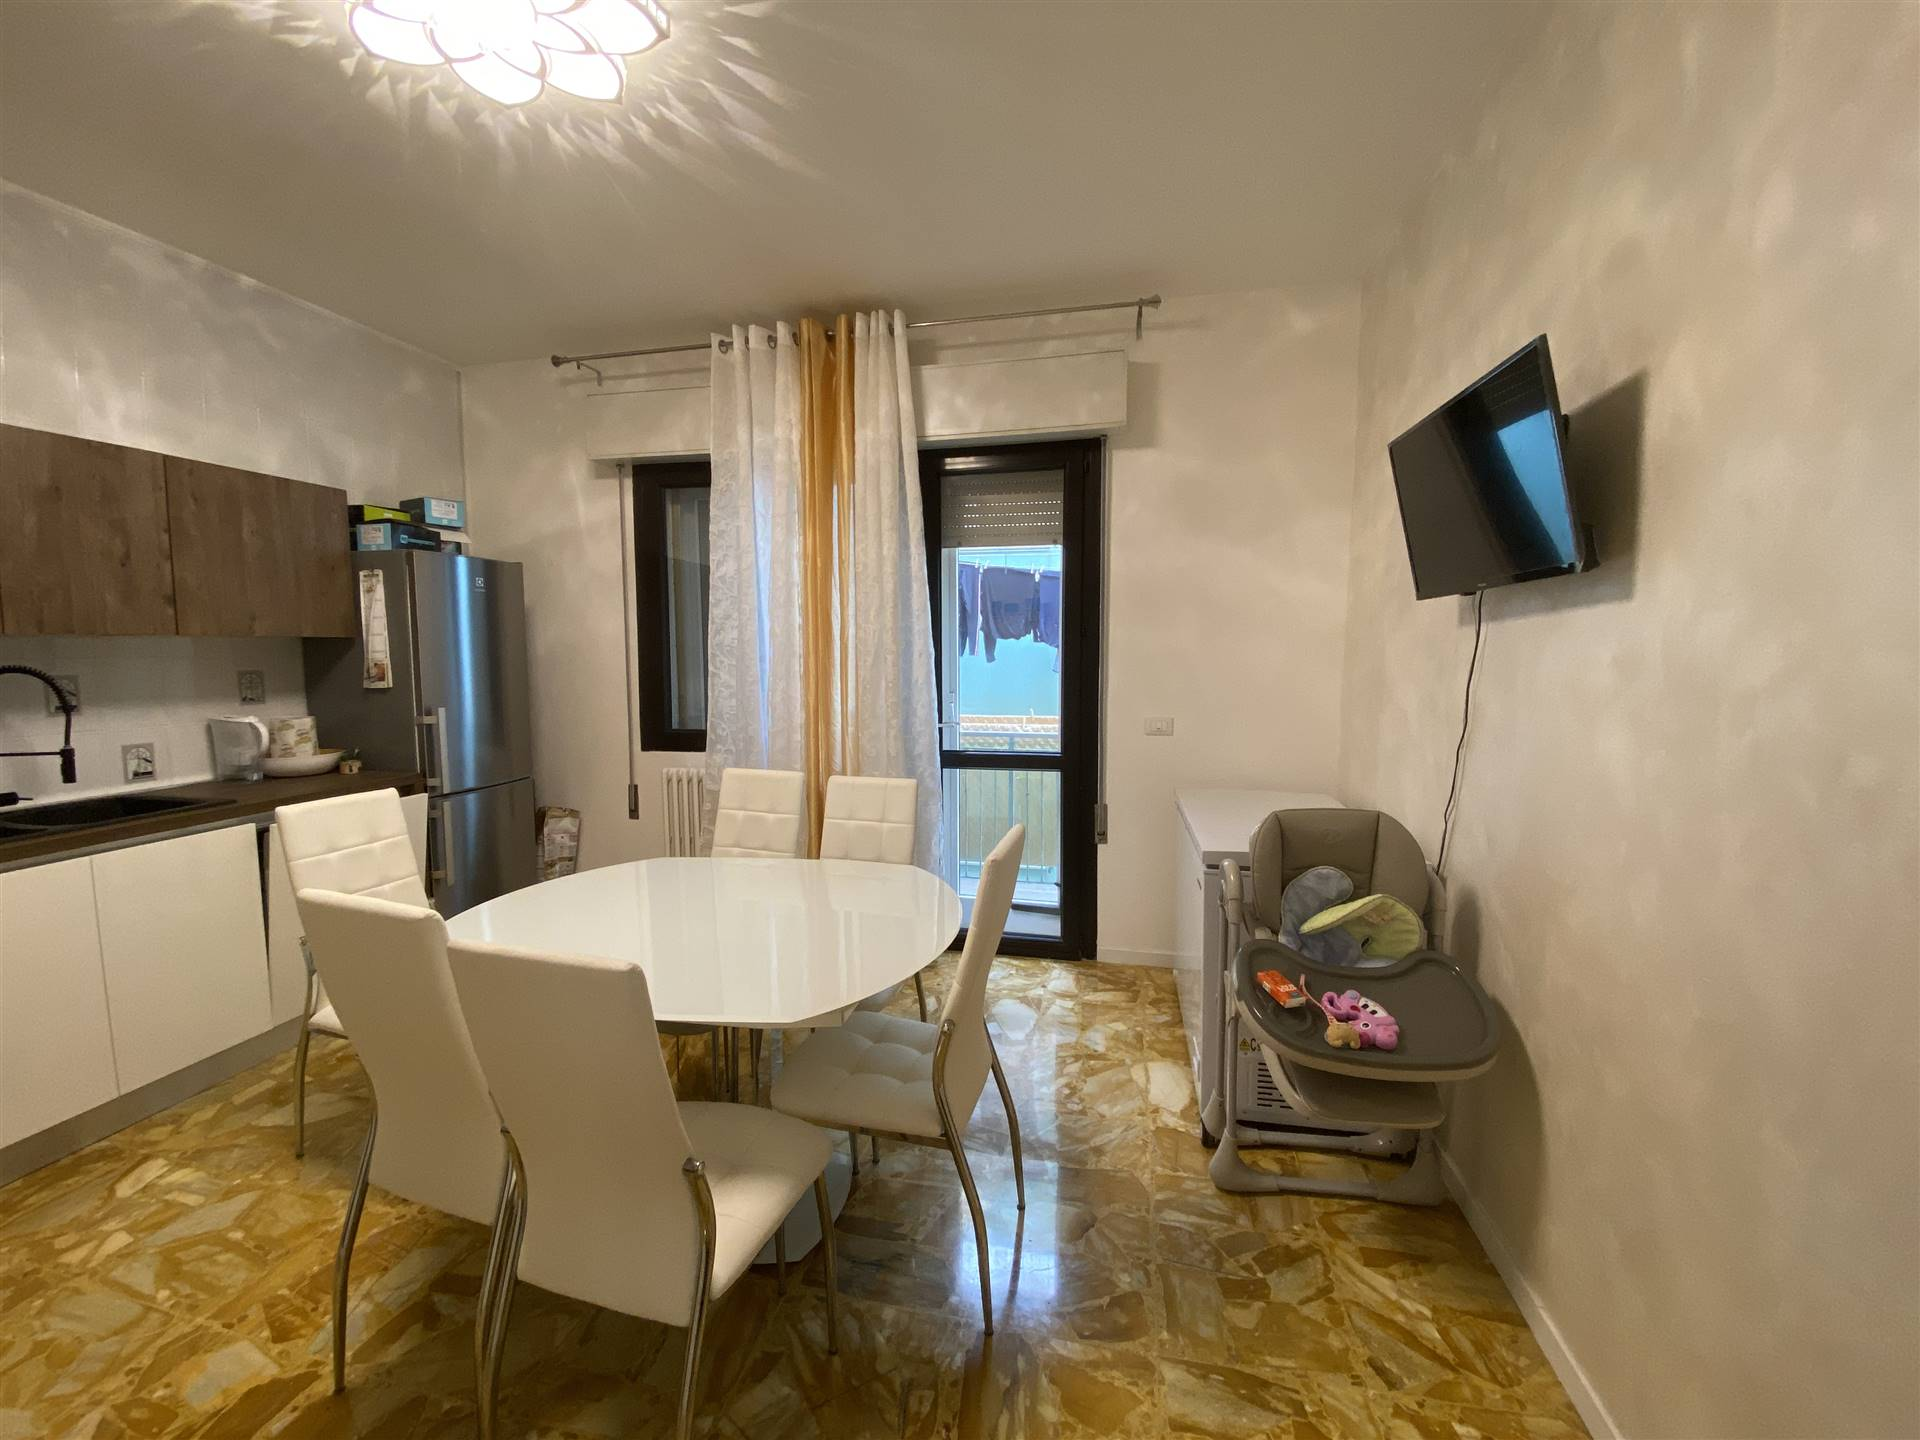 SOTTOMARINA, CHIOGGIA, Apartment for sale, Restored, Heating Individual heating system, Energetic class: G, placed at 3°, composed by: 4 Rooms,